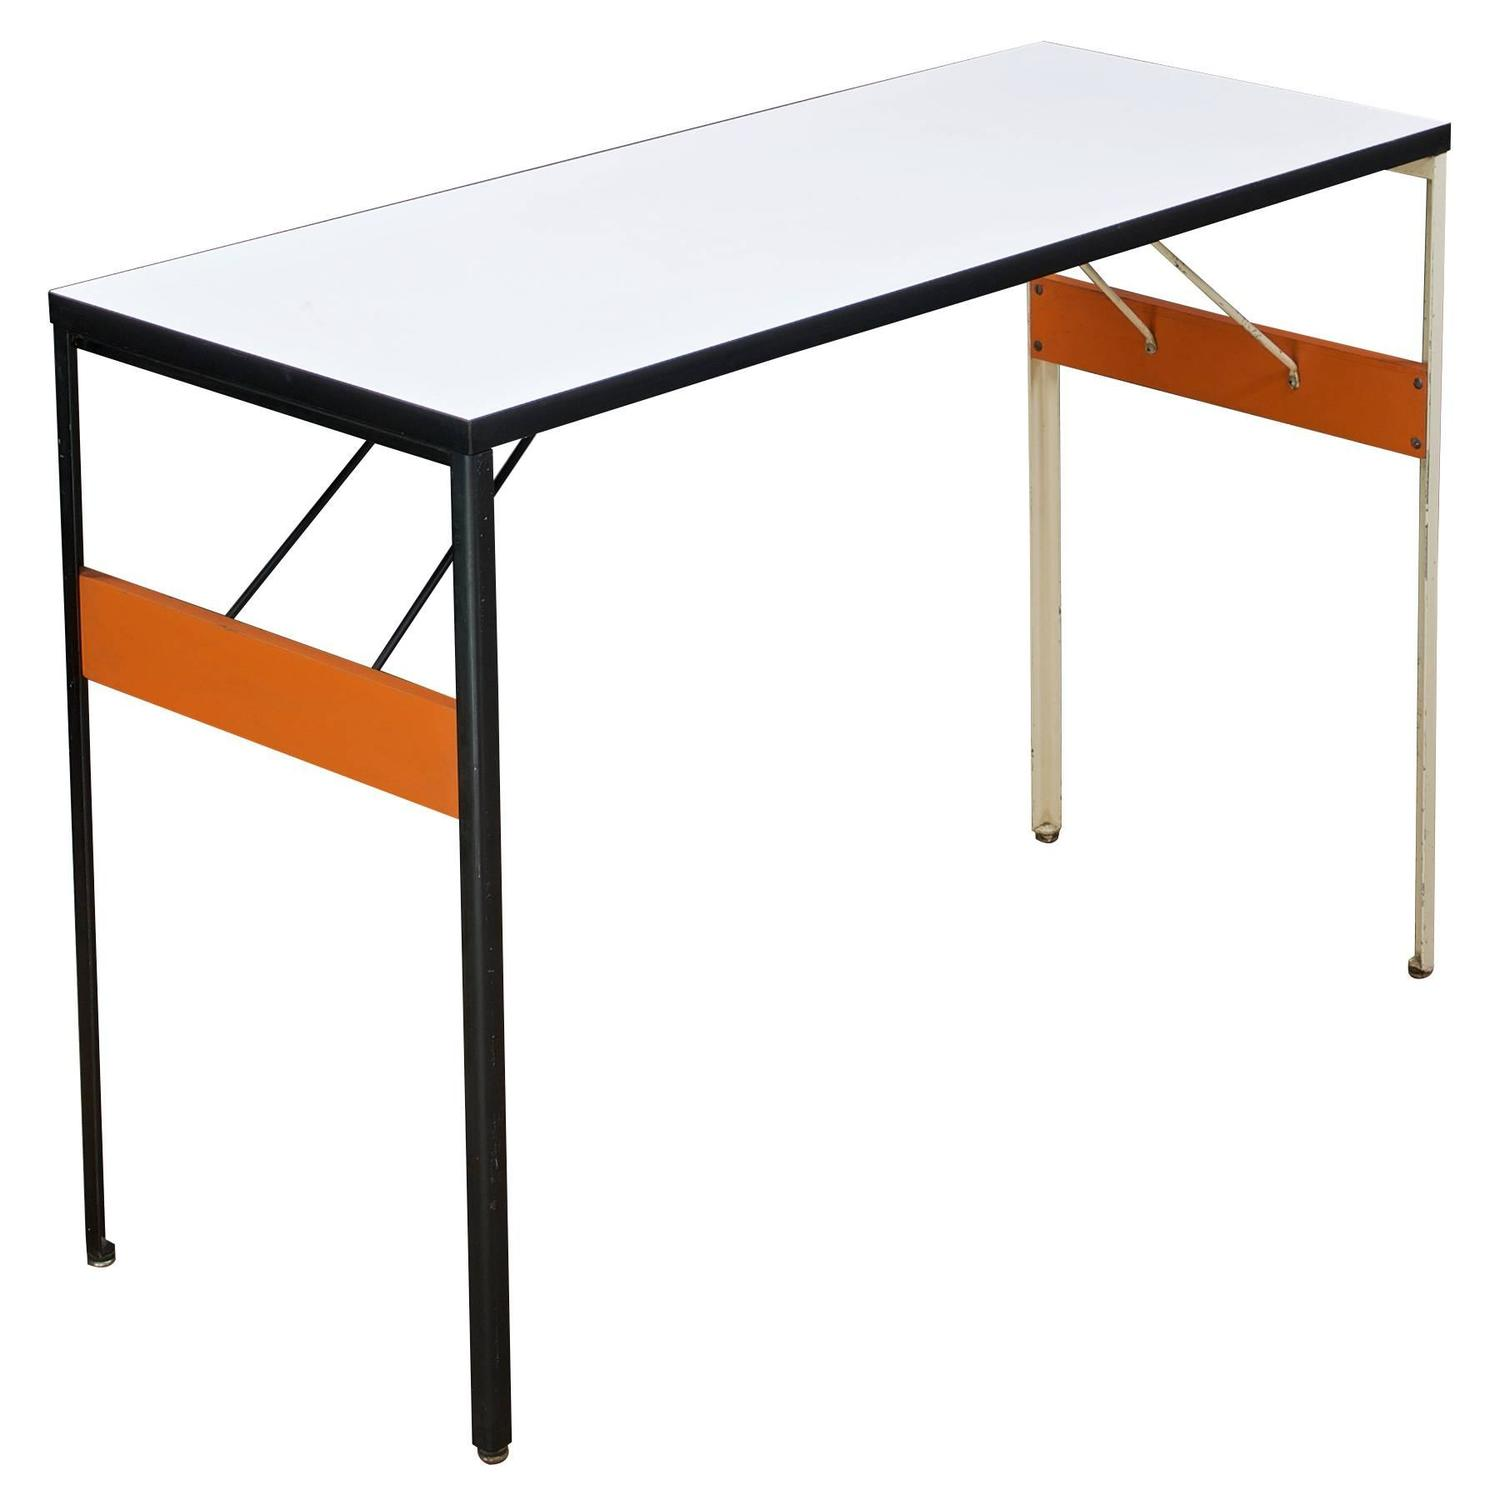 Minimalist Table Nelson Steelframe Group Console Table Desk Minimalist Pop Art For